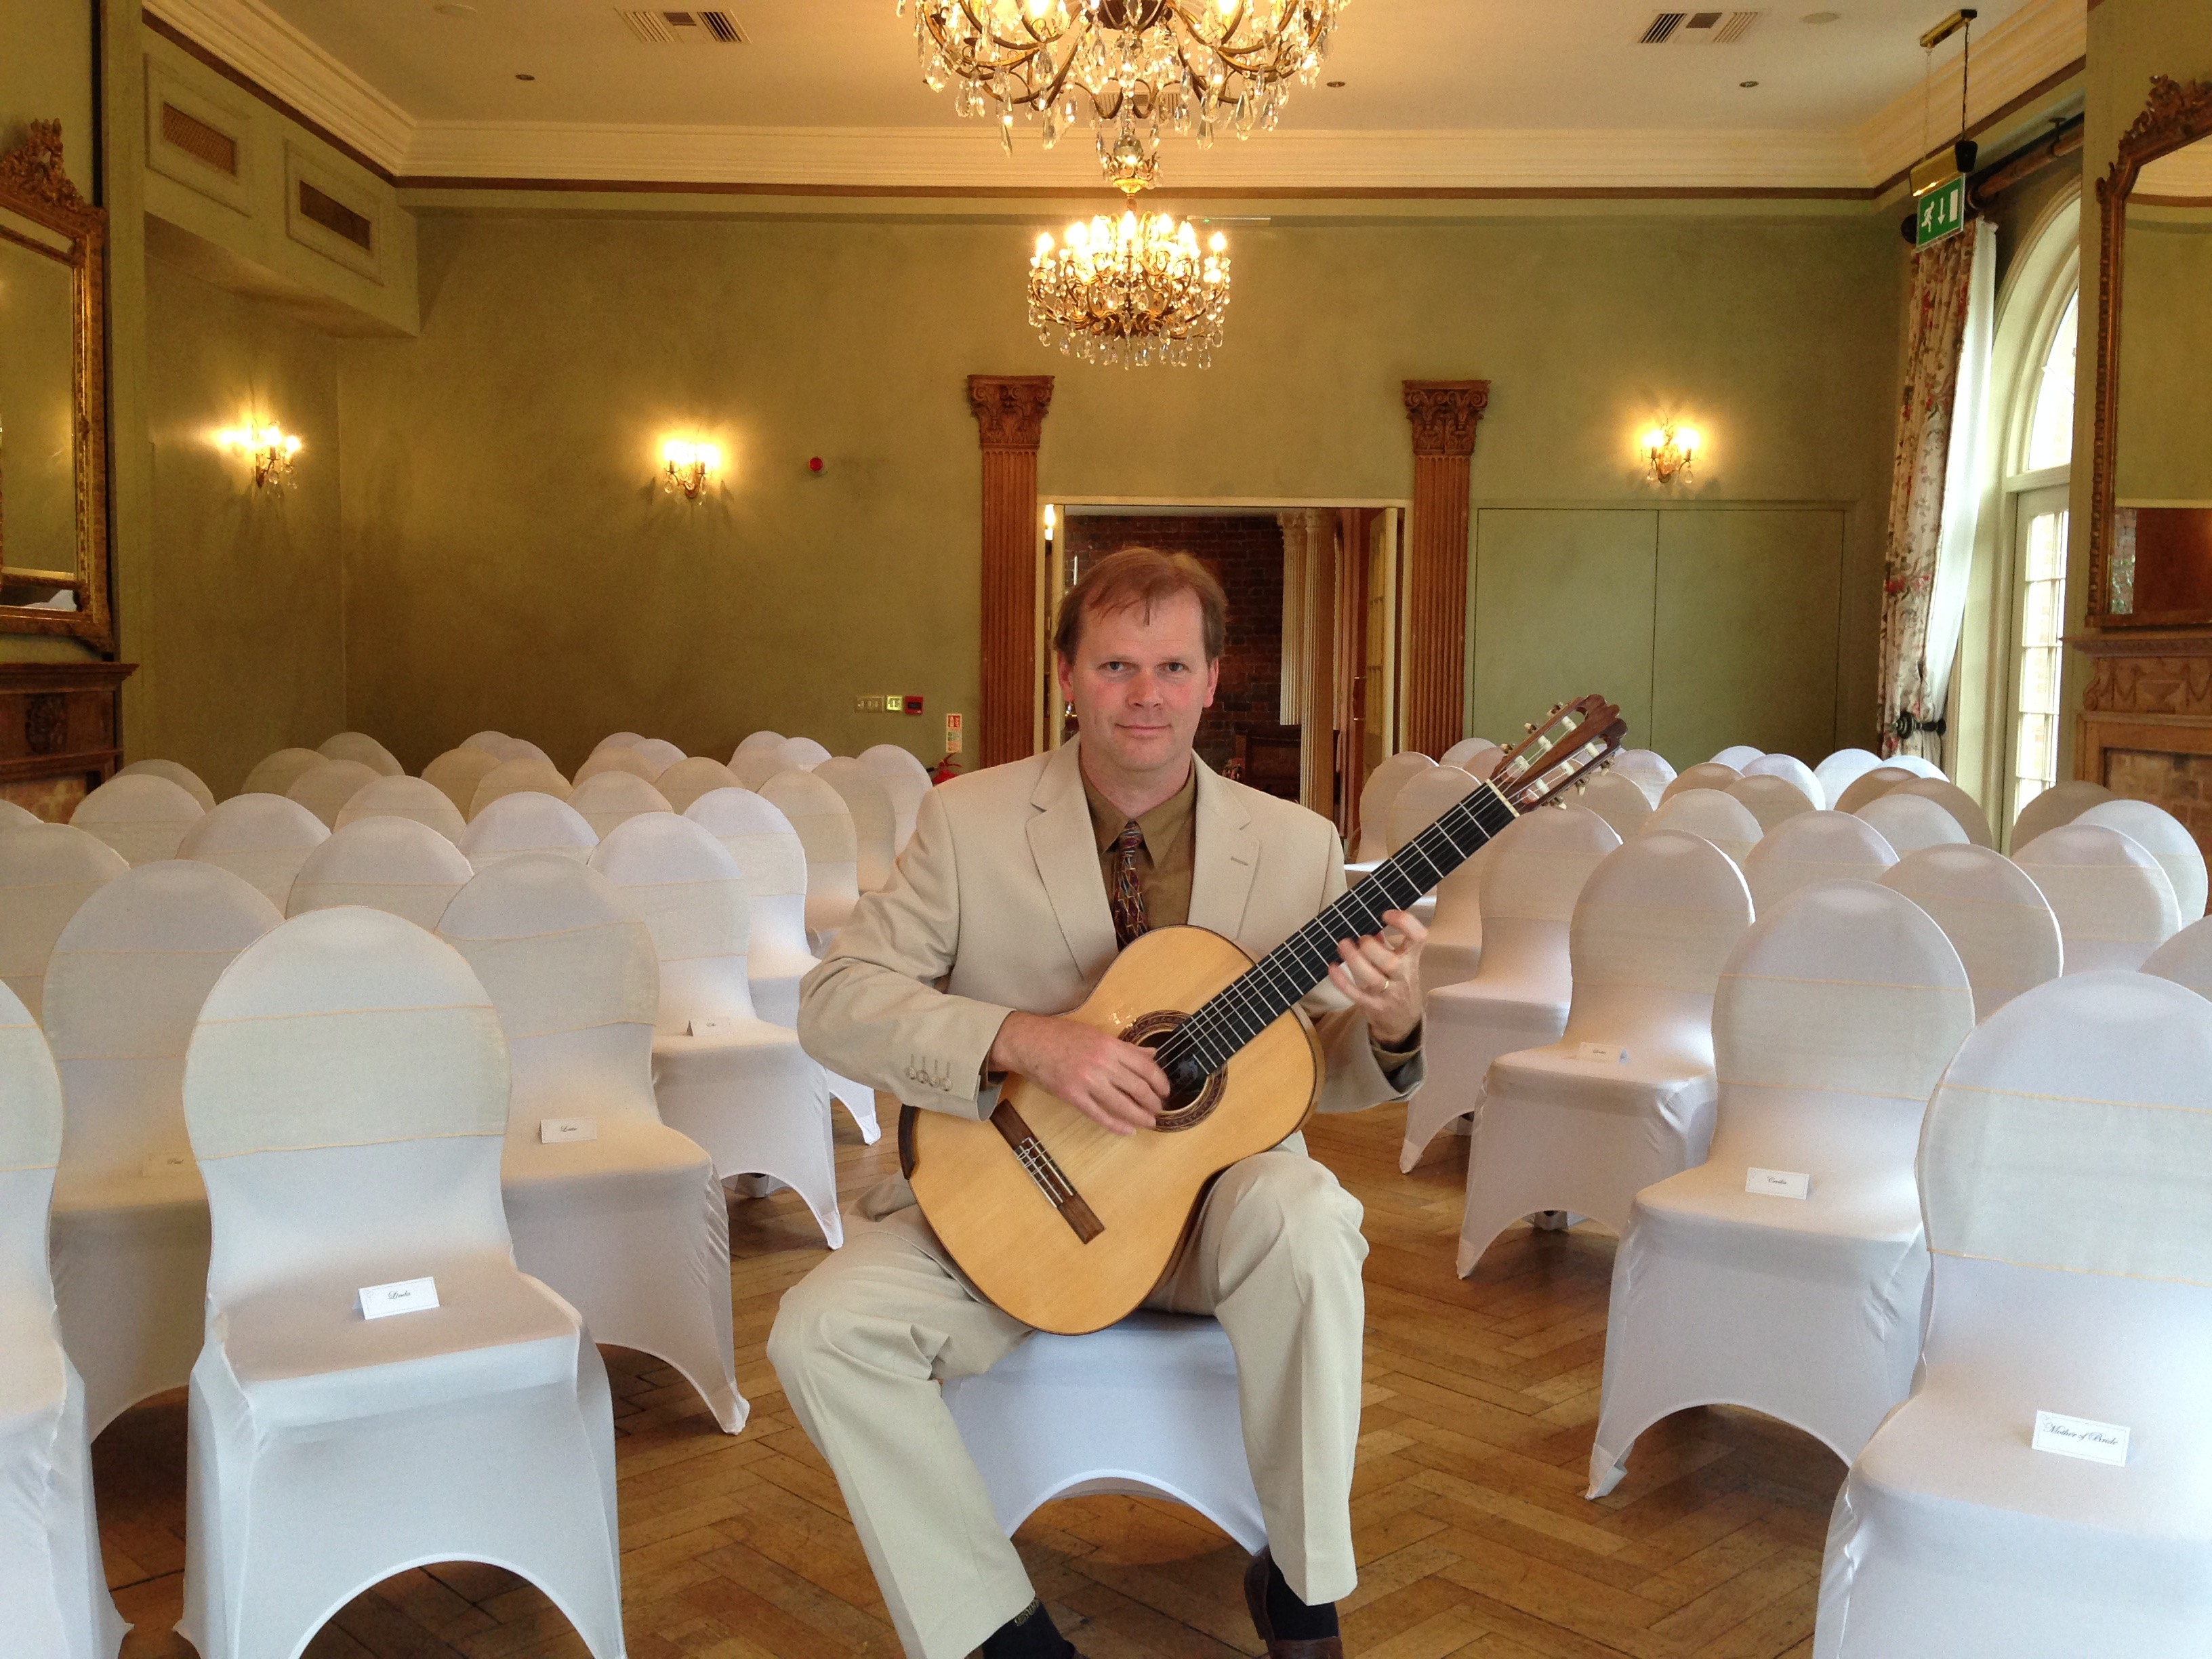 Guitarist in Coombe House ceremony